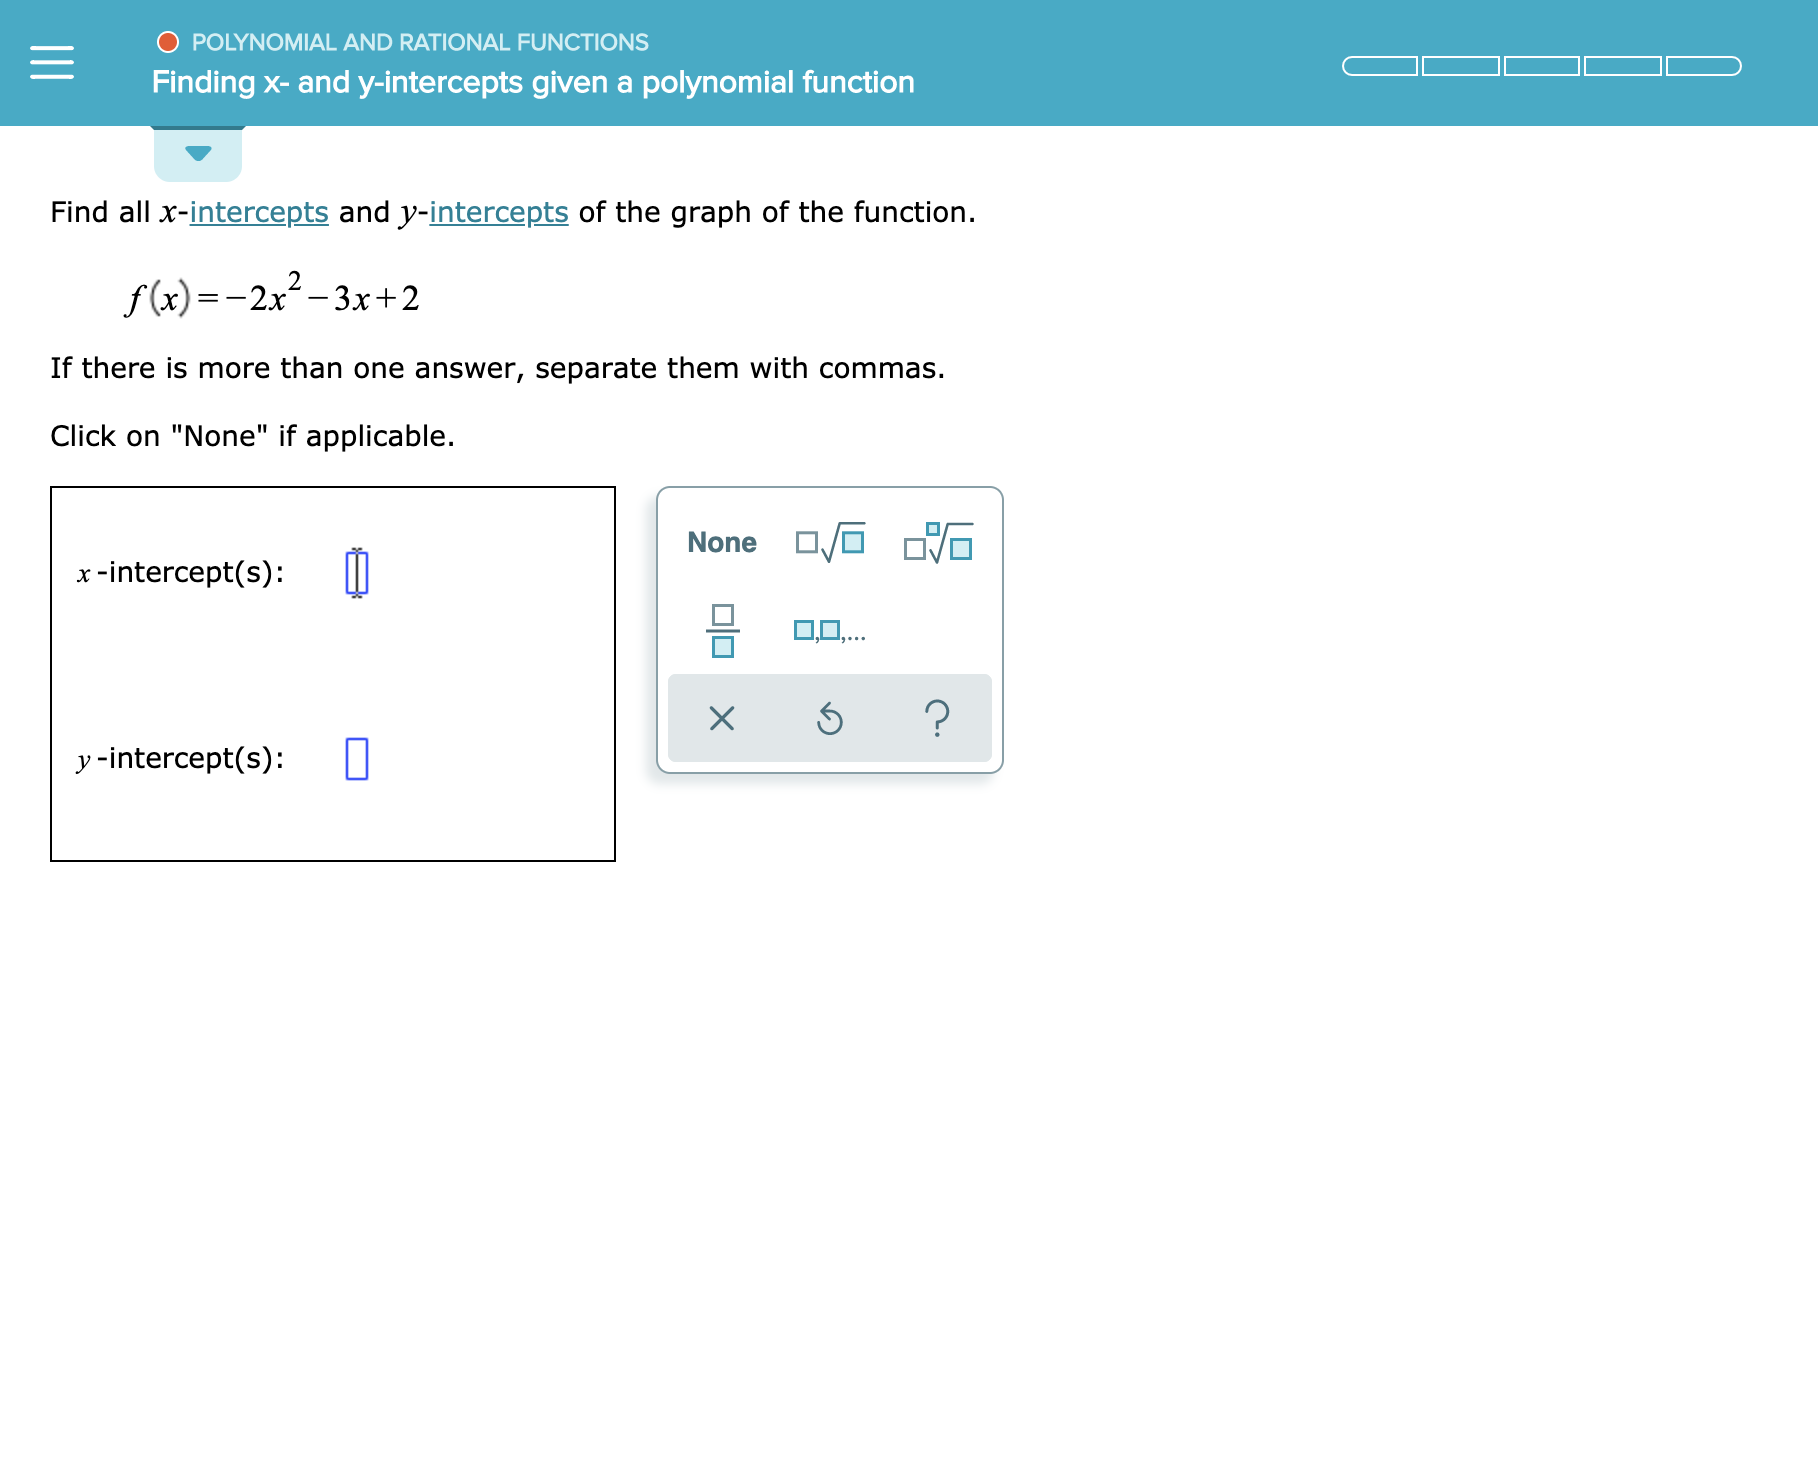 """O POLYNOMIAL AND RATIONAL FUNCTIONS Finding x- and y-intercepts givena polynomial function Find all x-intercepts and y-intercepts of the graph of the function f(x)-2x-3xr+2 If there is more than one answer, separate them with commas Click on """"None"""" if applicable None x-intercept(s) LO.. ? X y -intercept(s)"""